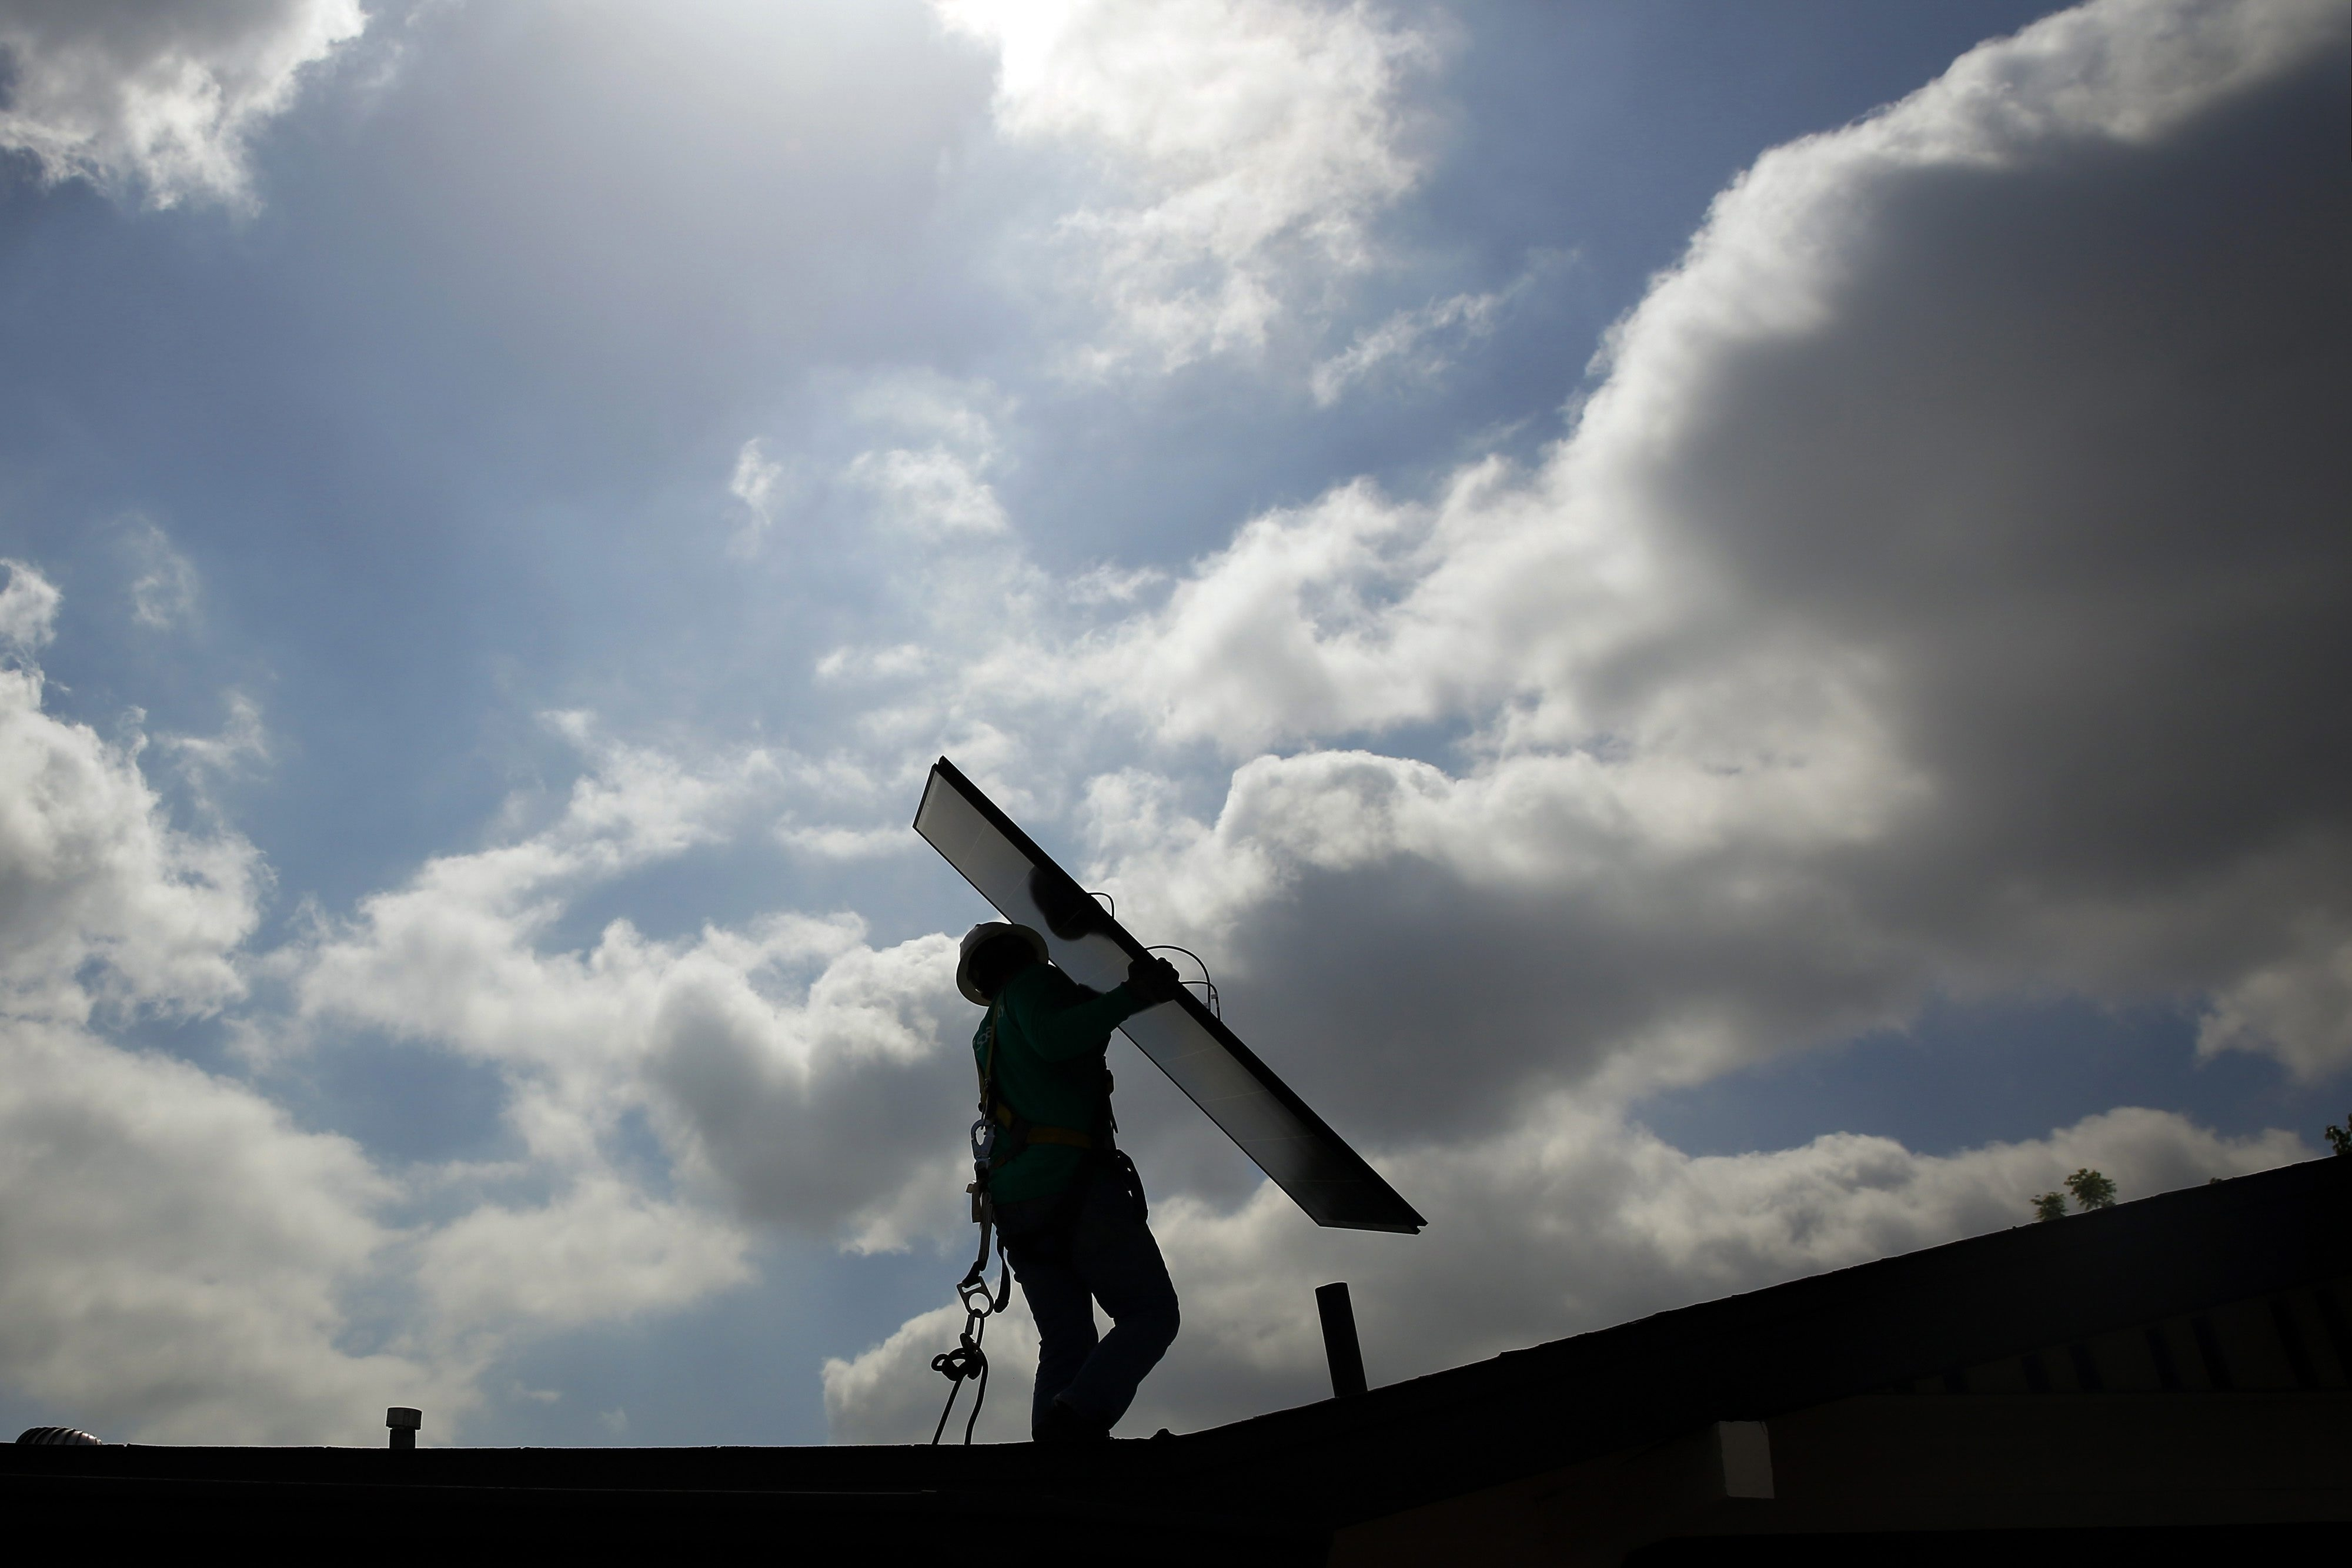 A SolarCity Corp. employee carries a solar panel during an installation at a home in Los Angeles. The company is planning to start installing in Pittsburgh, the closest to Buffalo yet for the company. (Bloomberg photo)